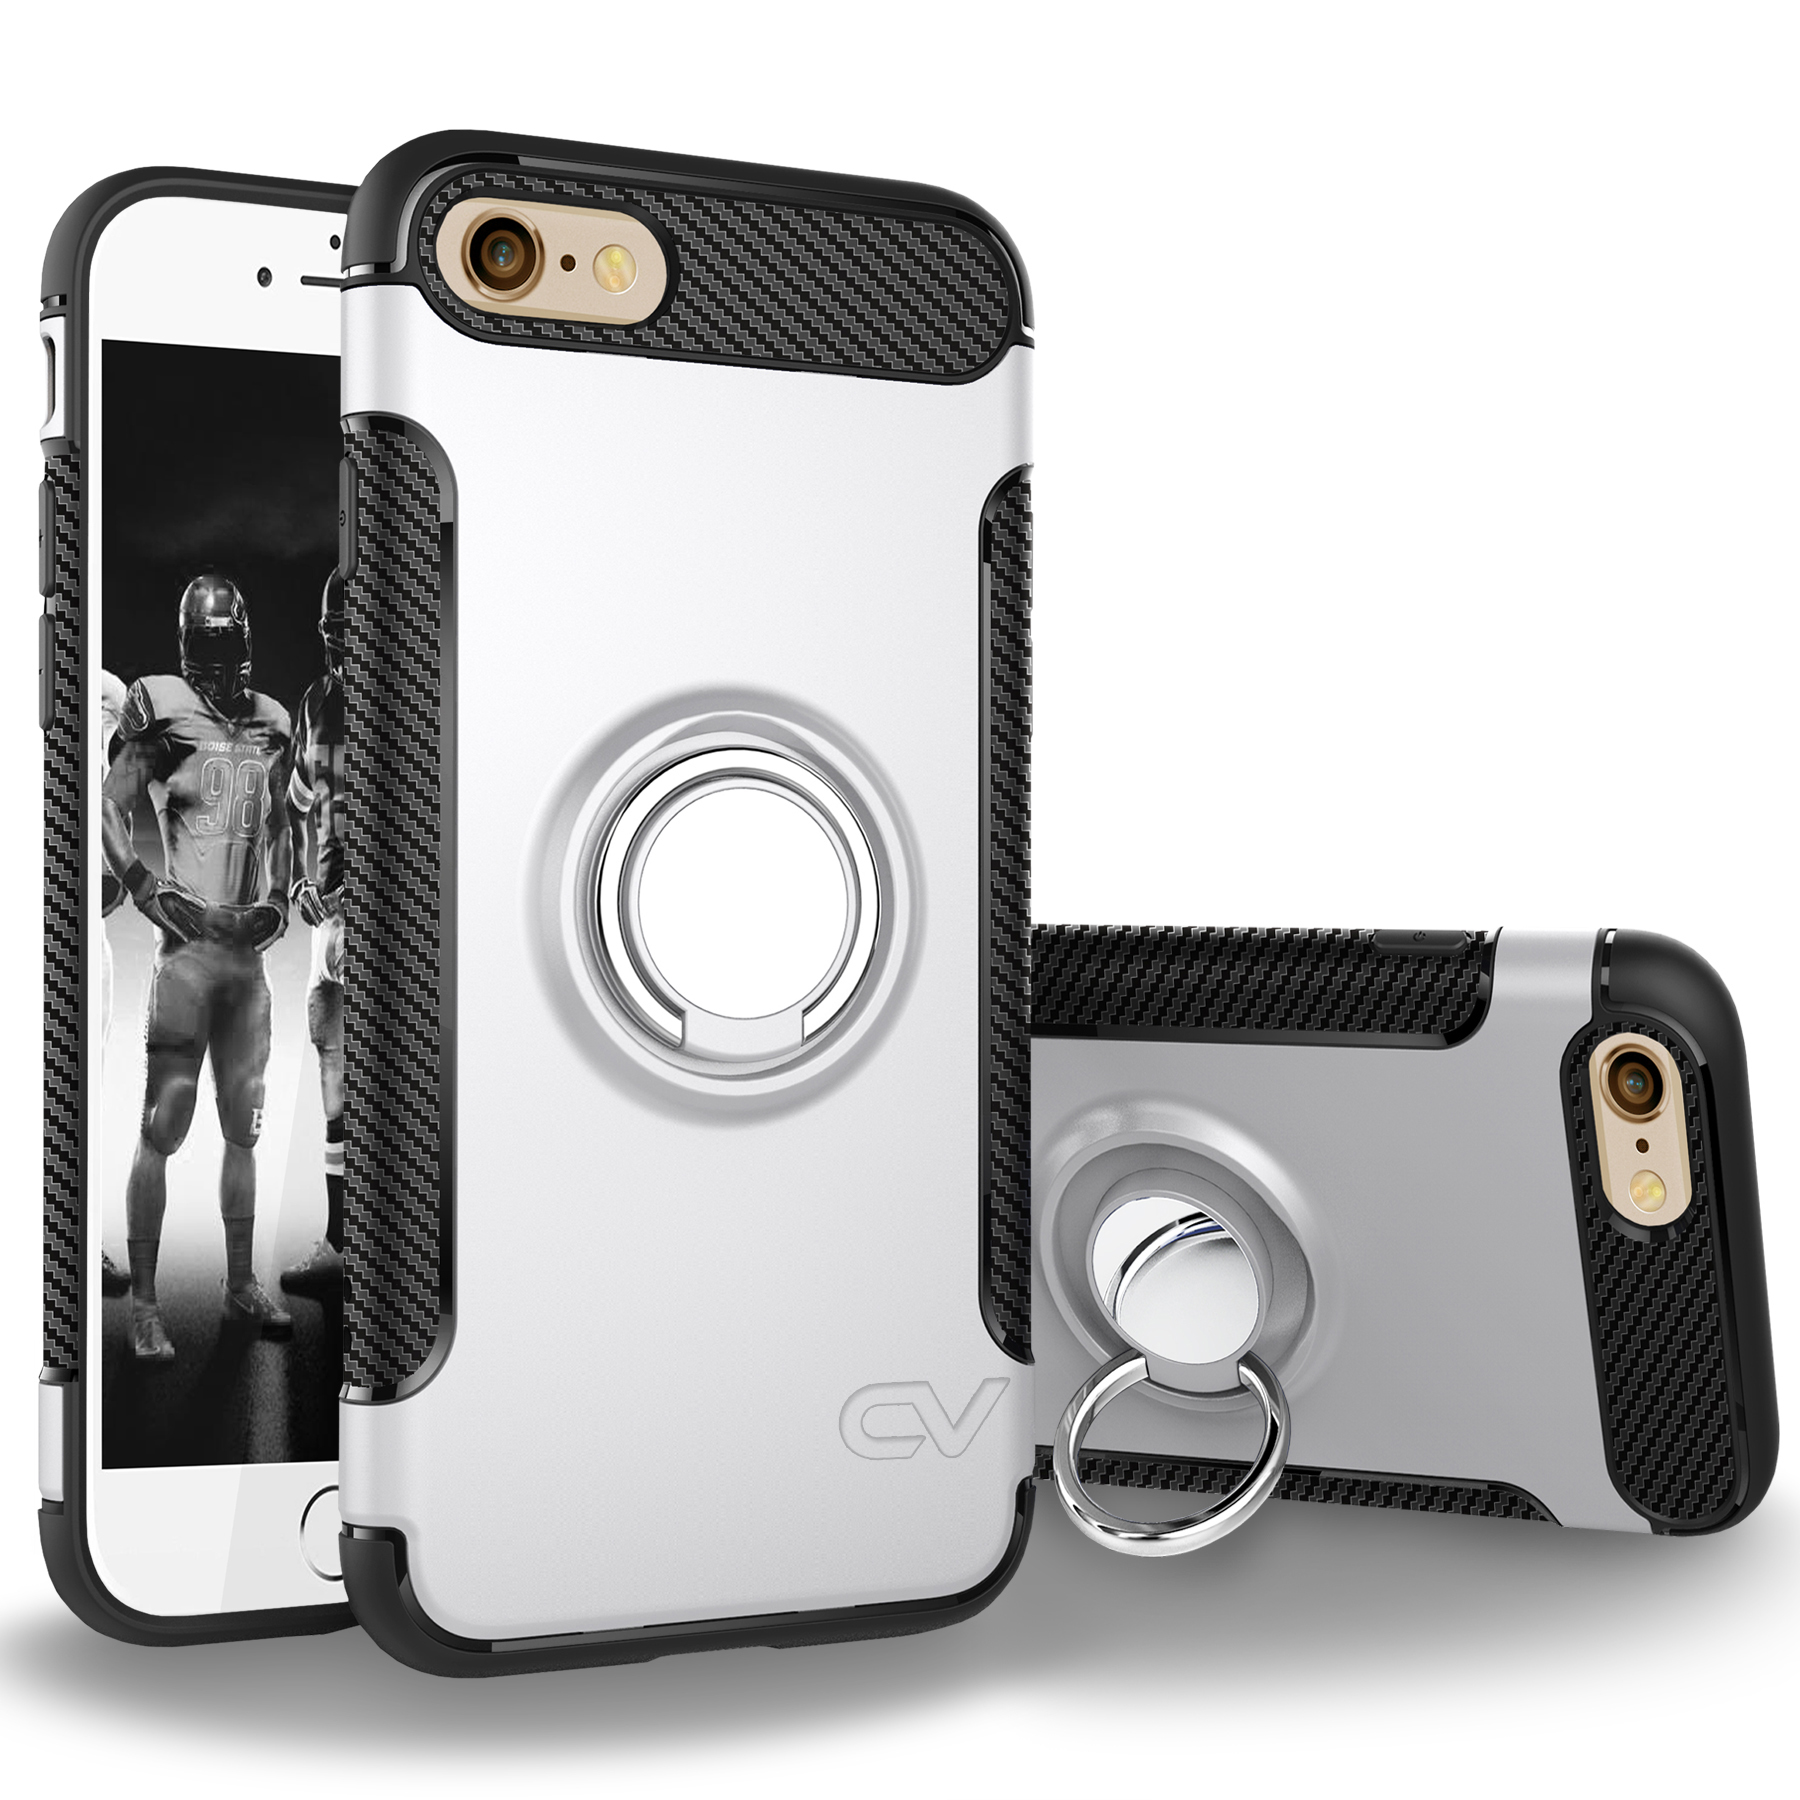 iPhone 6 Case, iPhone 6S Case, Cellularvilla Hybrid Dual Layer Protective Case [Shockproof] Built-in Rotating Metal Ring Holder Kickstand Cover for Apple iPhone 6 / 6S 4.7 Inch